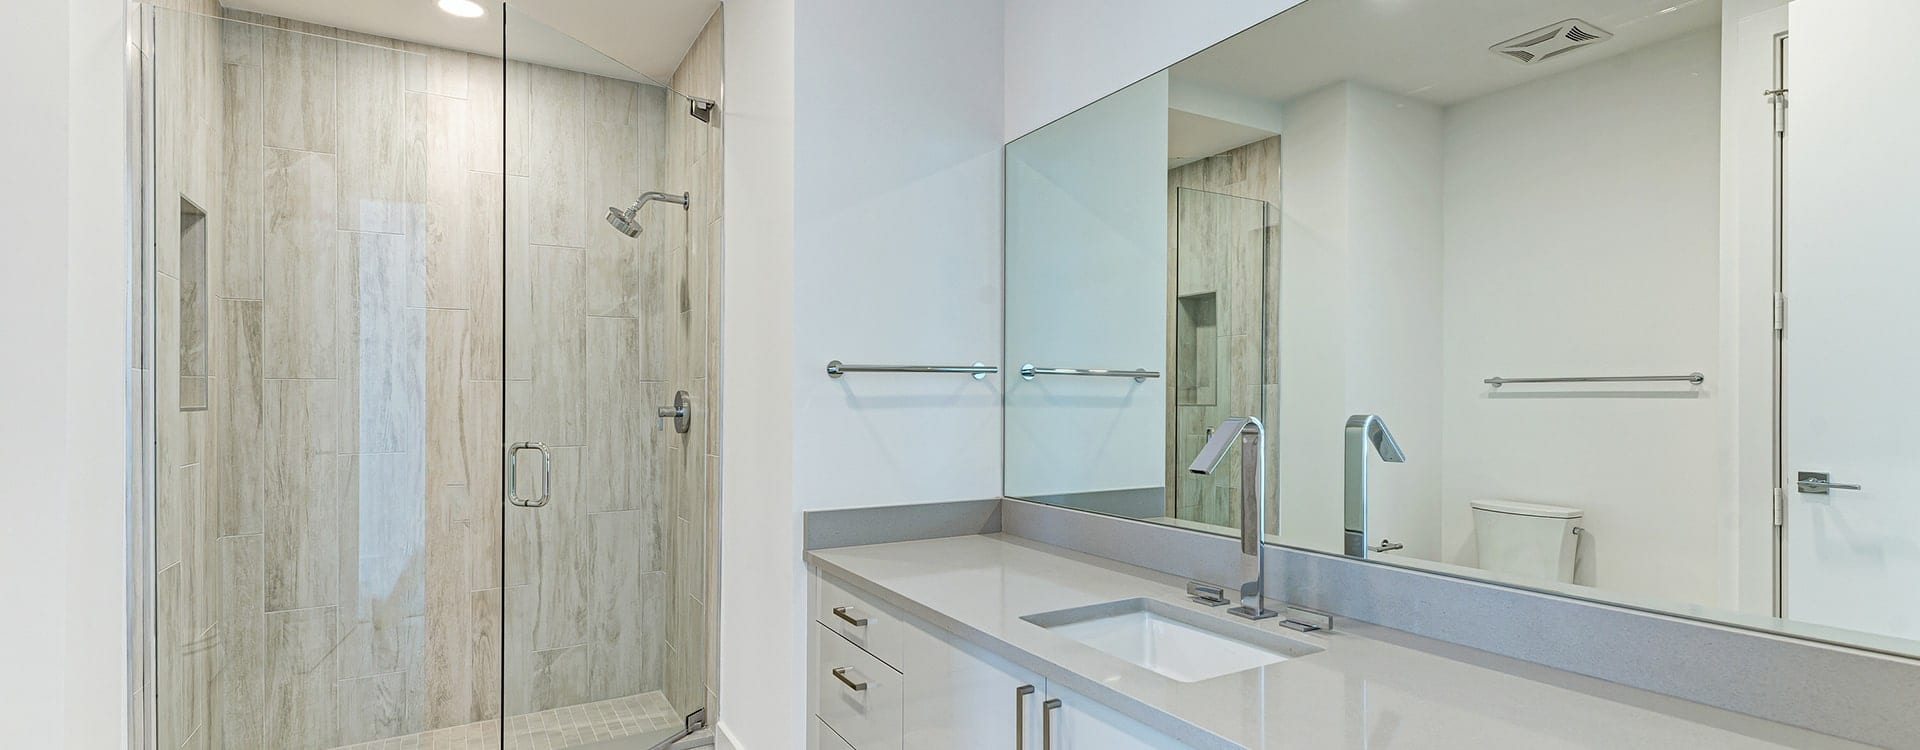 bathroom sink and shower at BLVD Sarasota Residence 1702